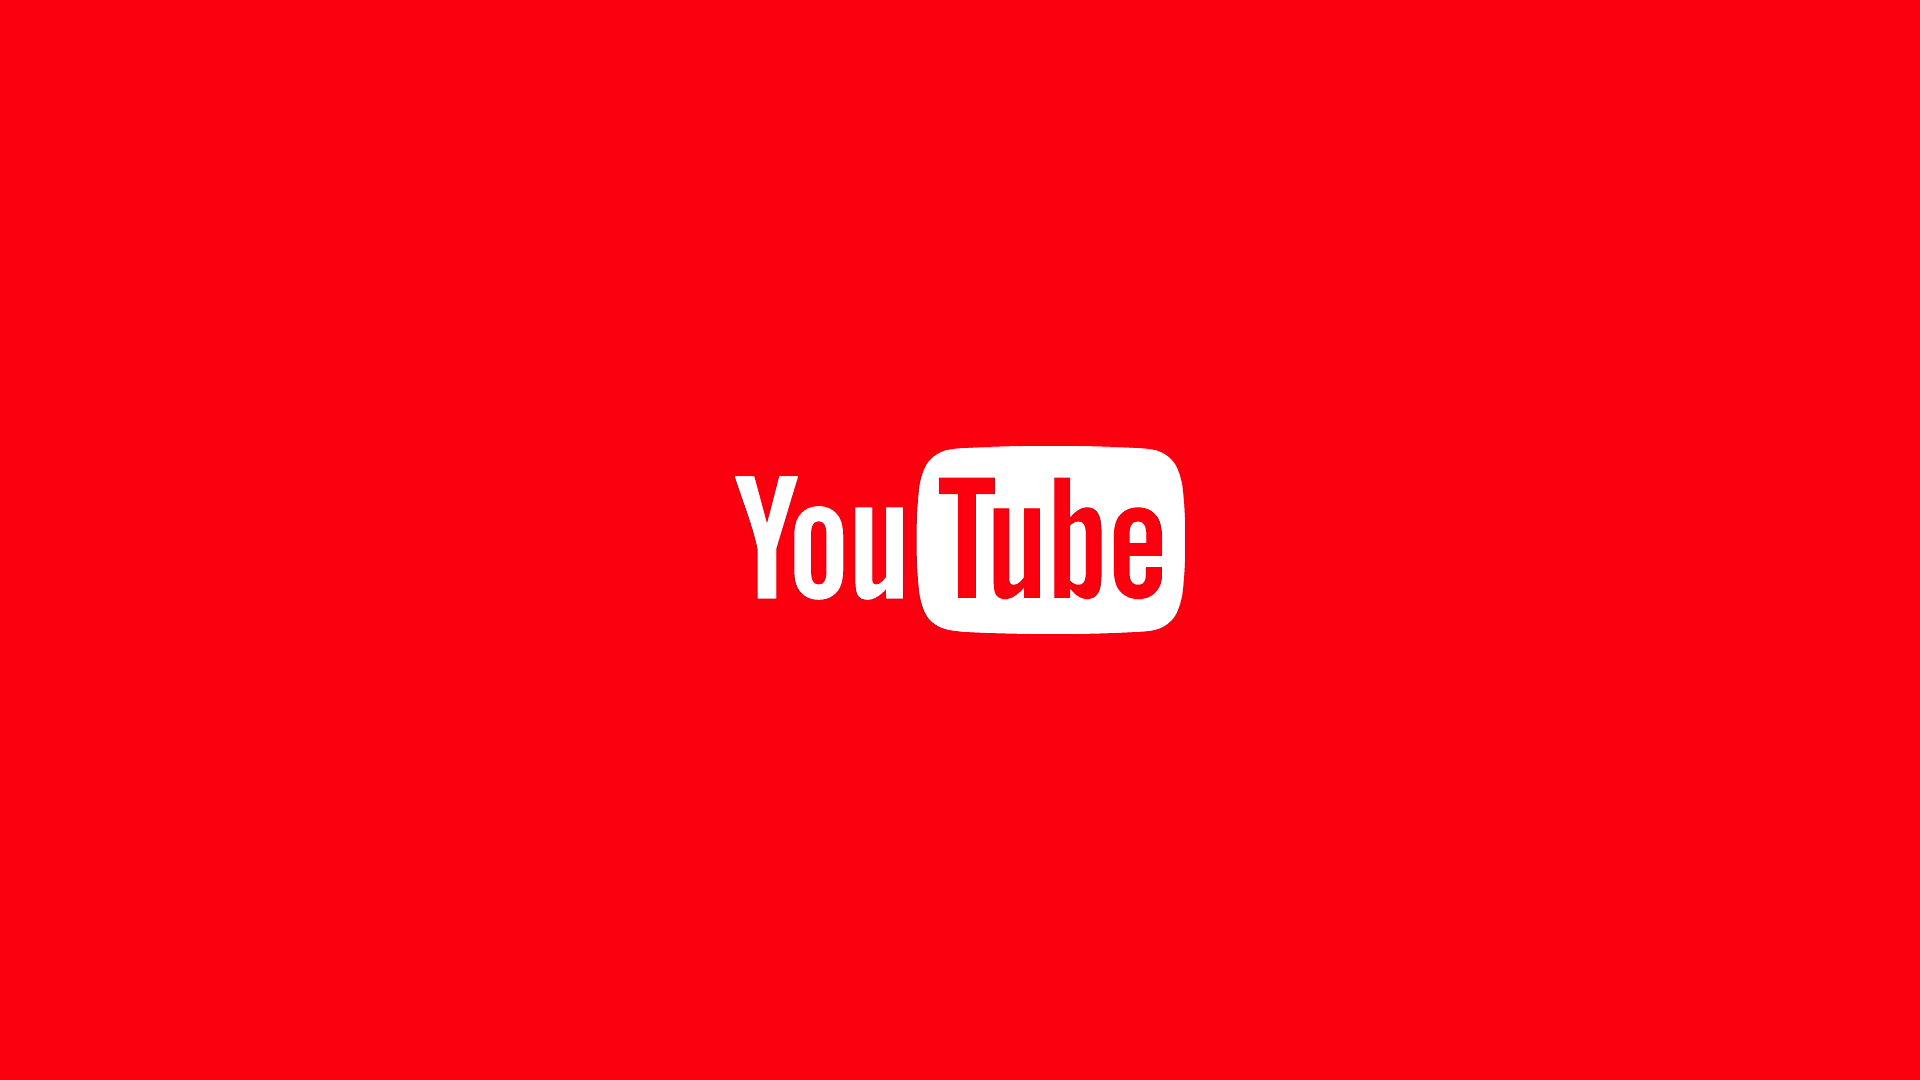 youtube at